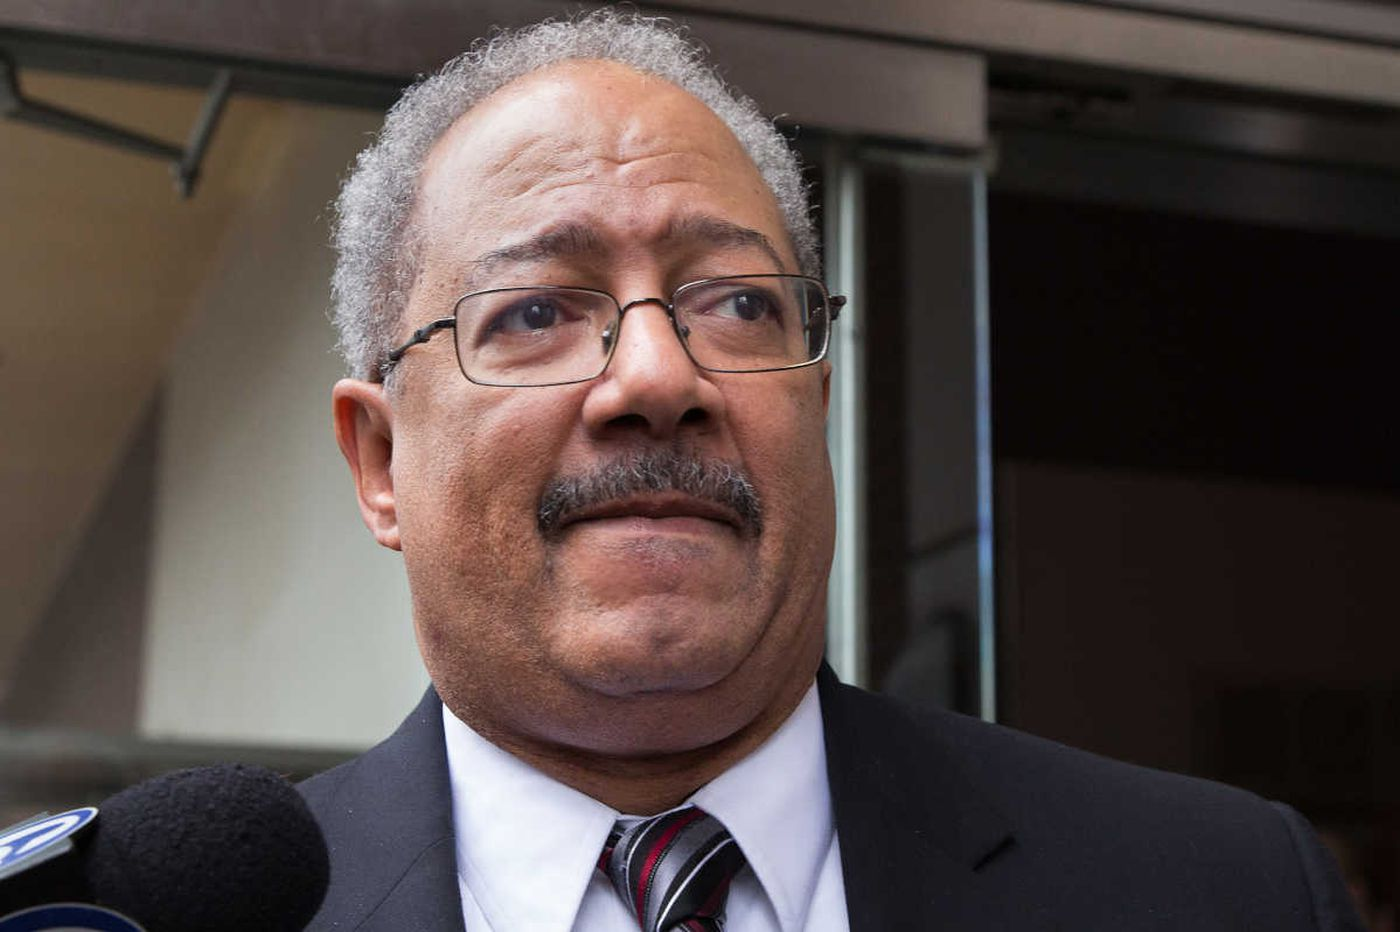 Judge rejects Fattah's attempt to stay out of prison during appeal